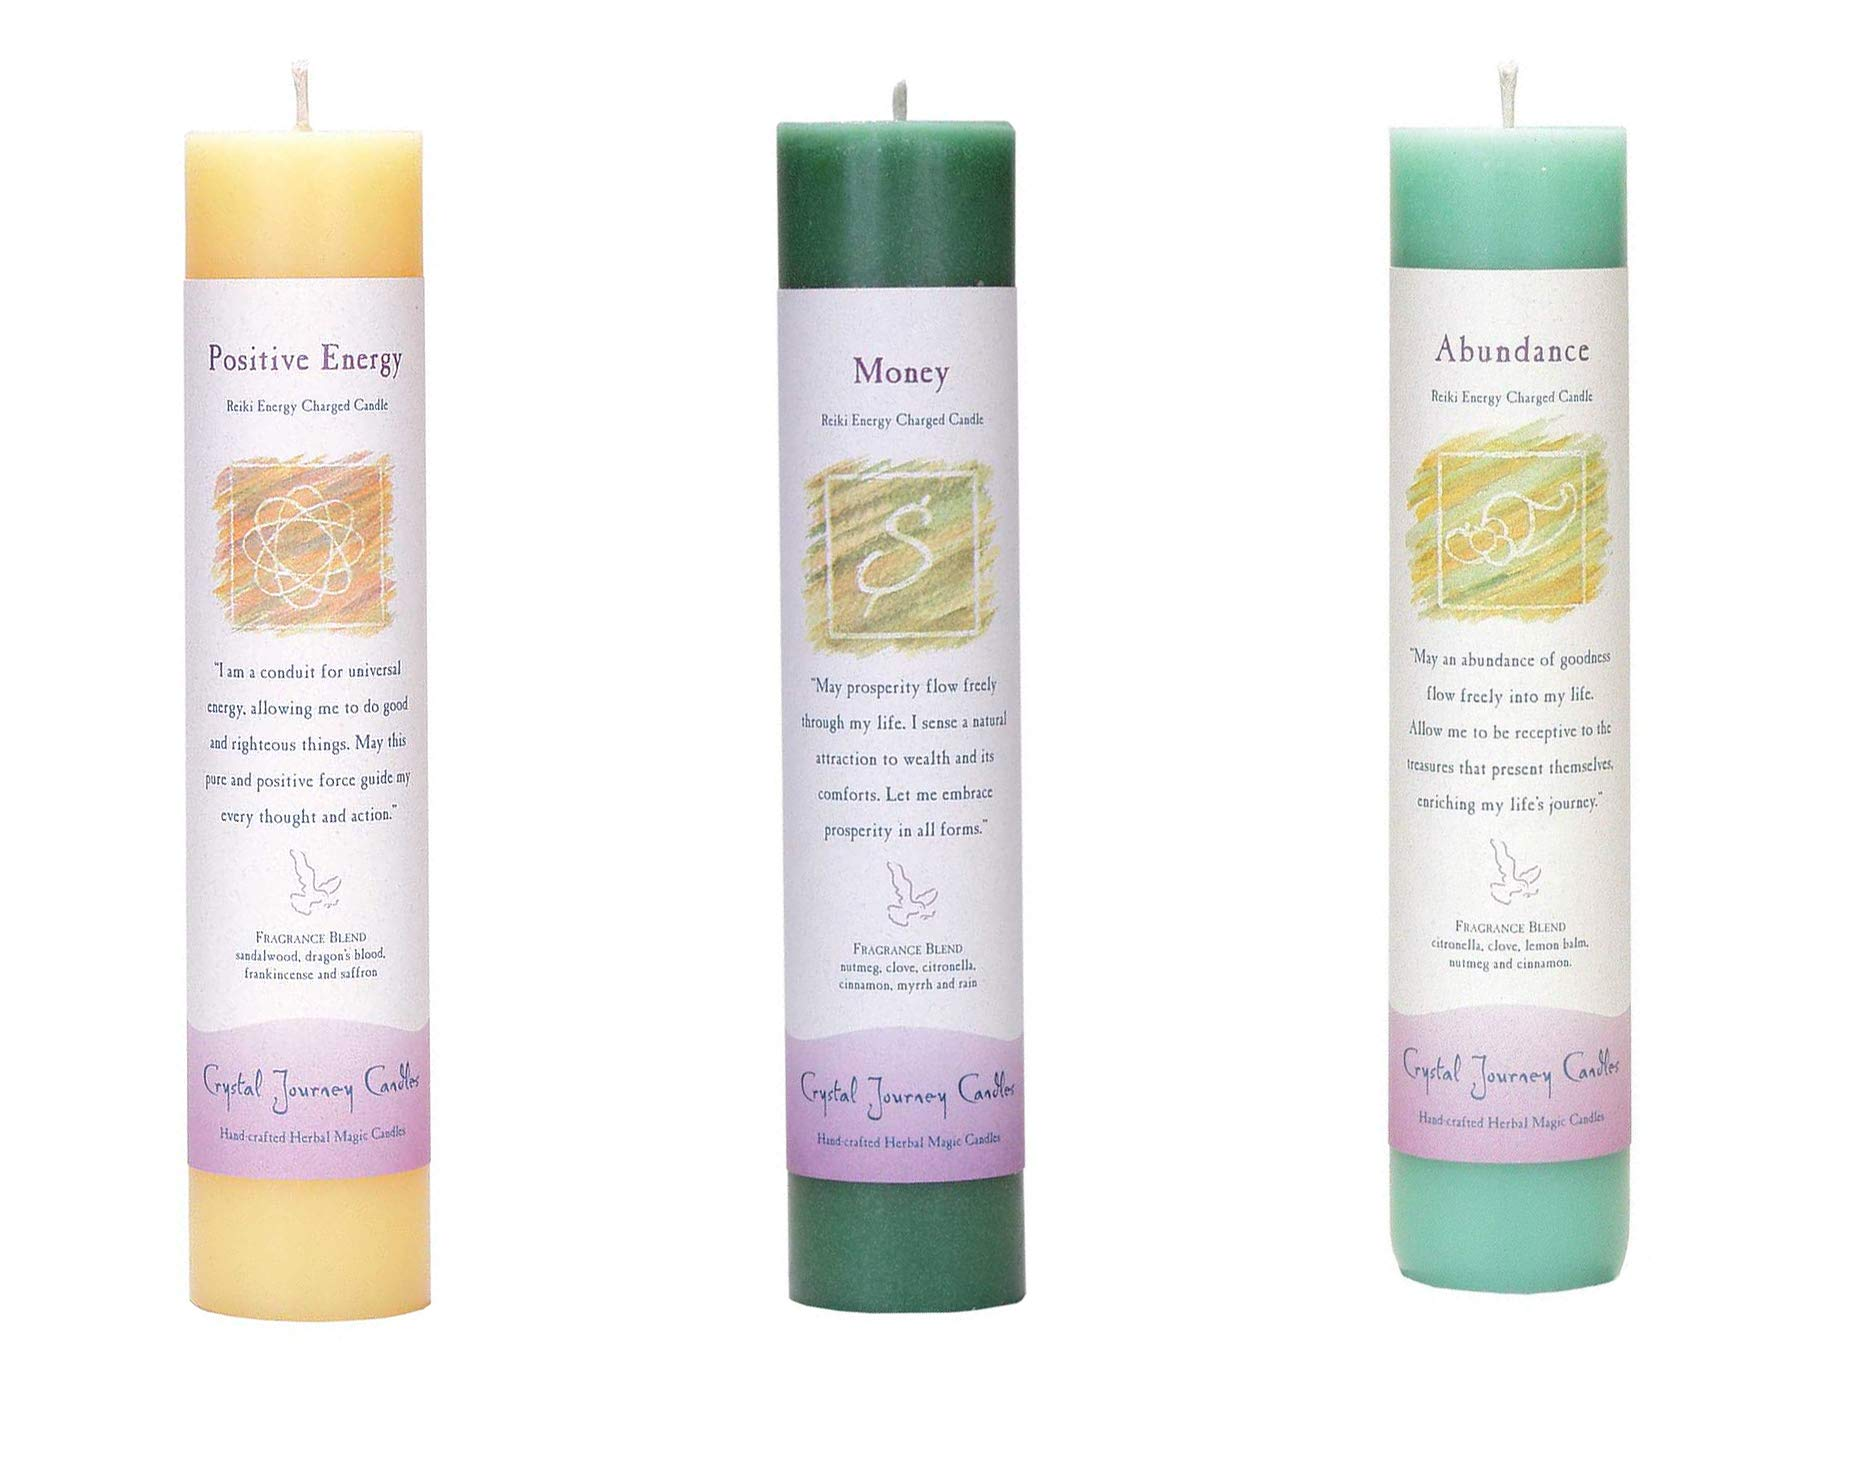 Crystal Journey Reiki Charged Herbal Magic Pillar Candle Wealth and Health Bundle (Positive Energy, Money, Abundance)